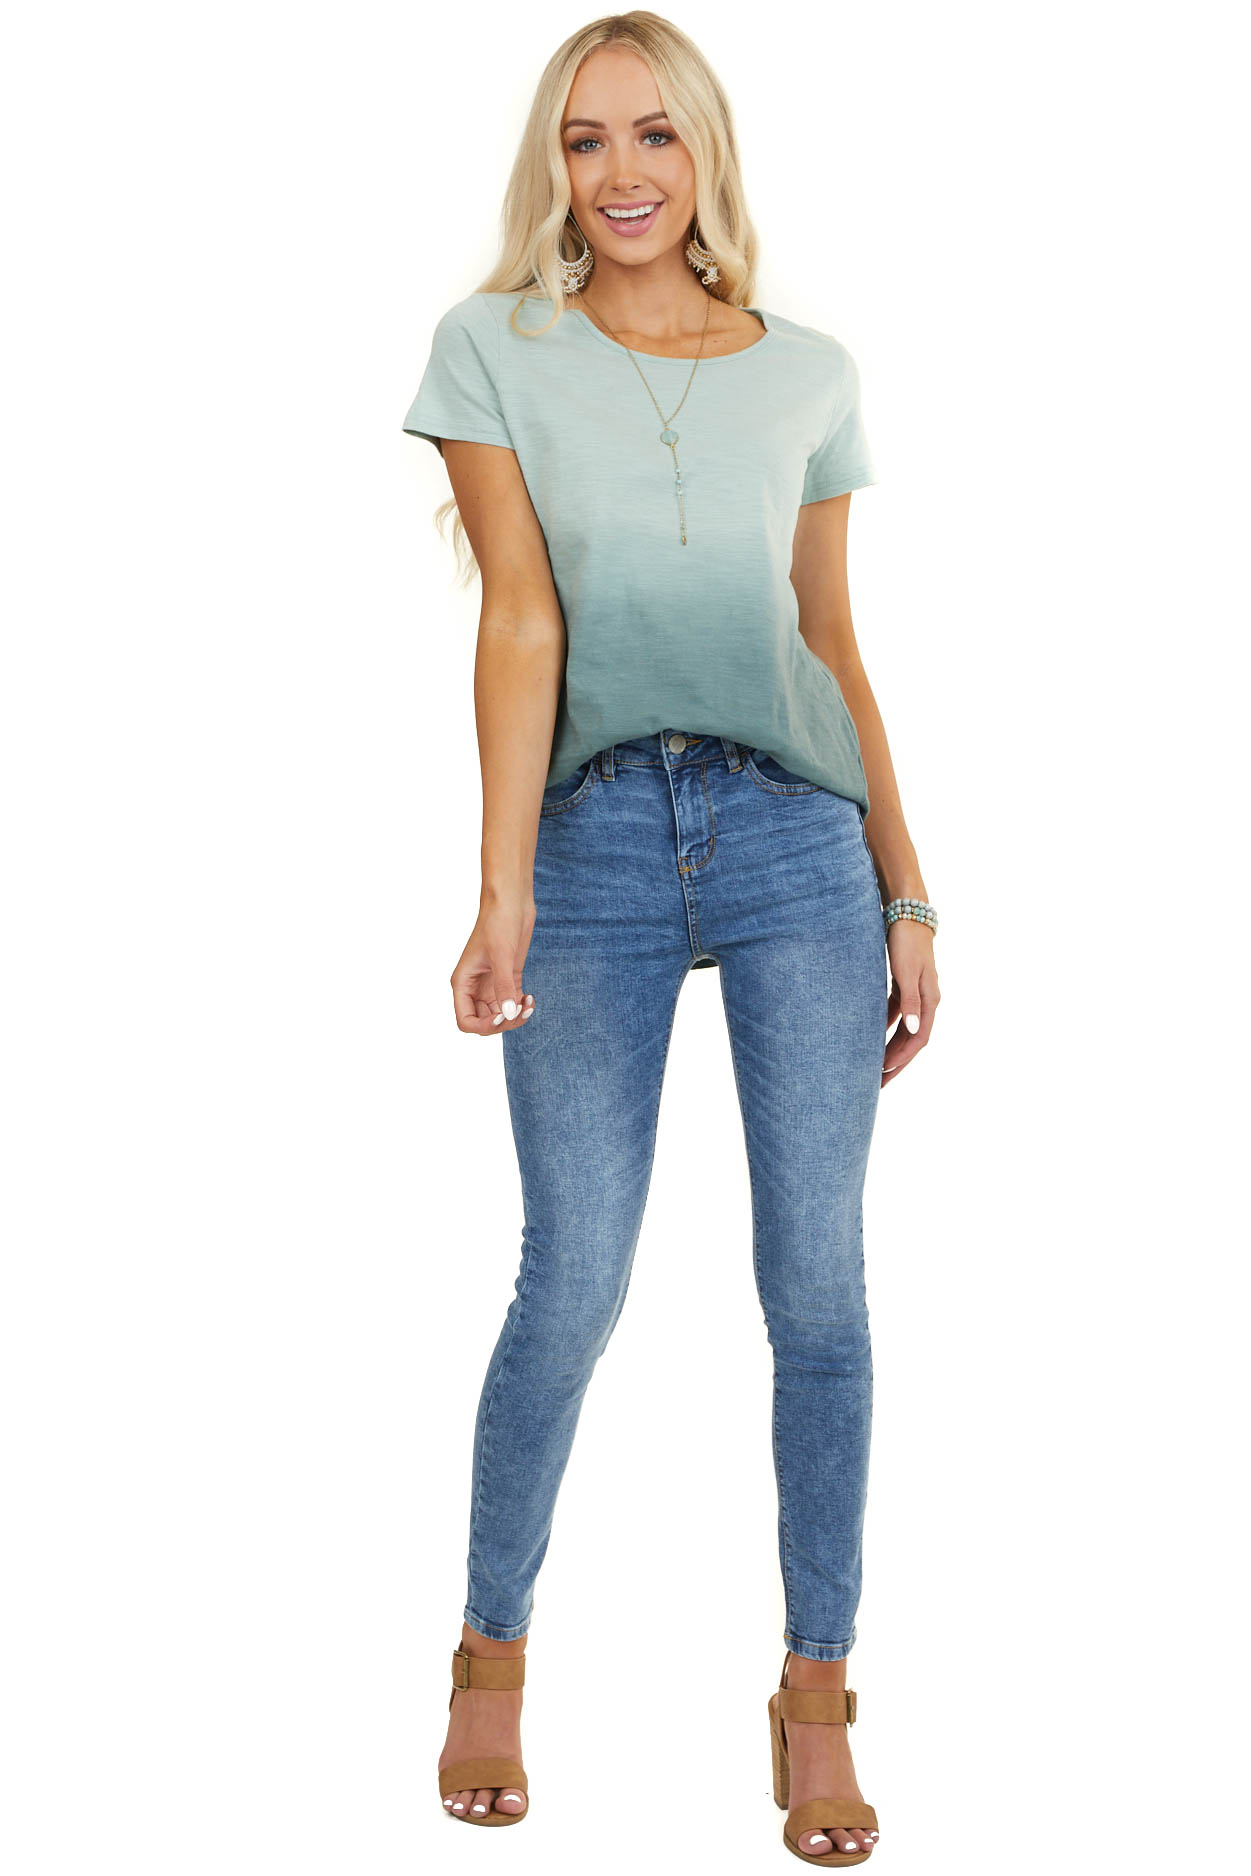 Sage and Pine Ombre Short Sleeve Top with High Low Hemline